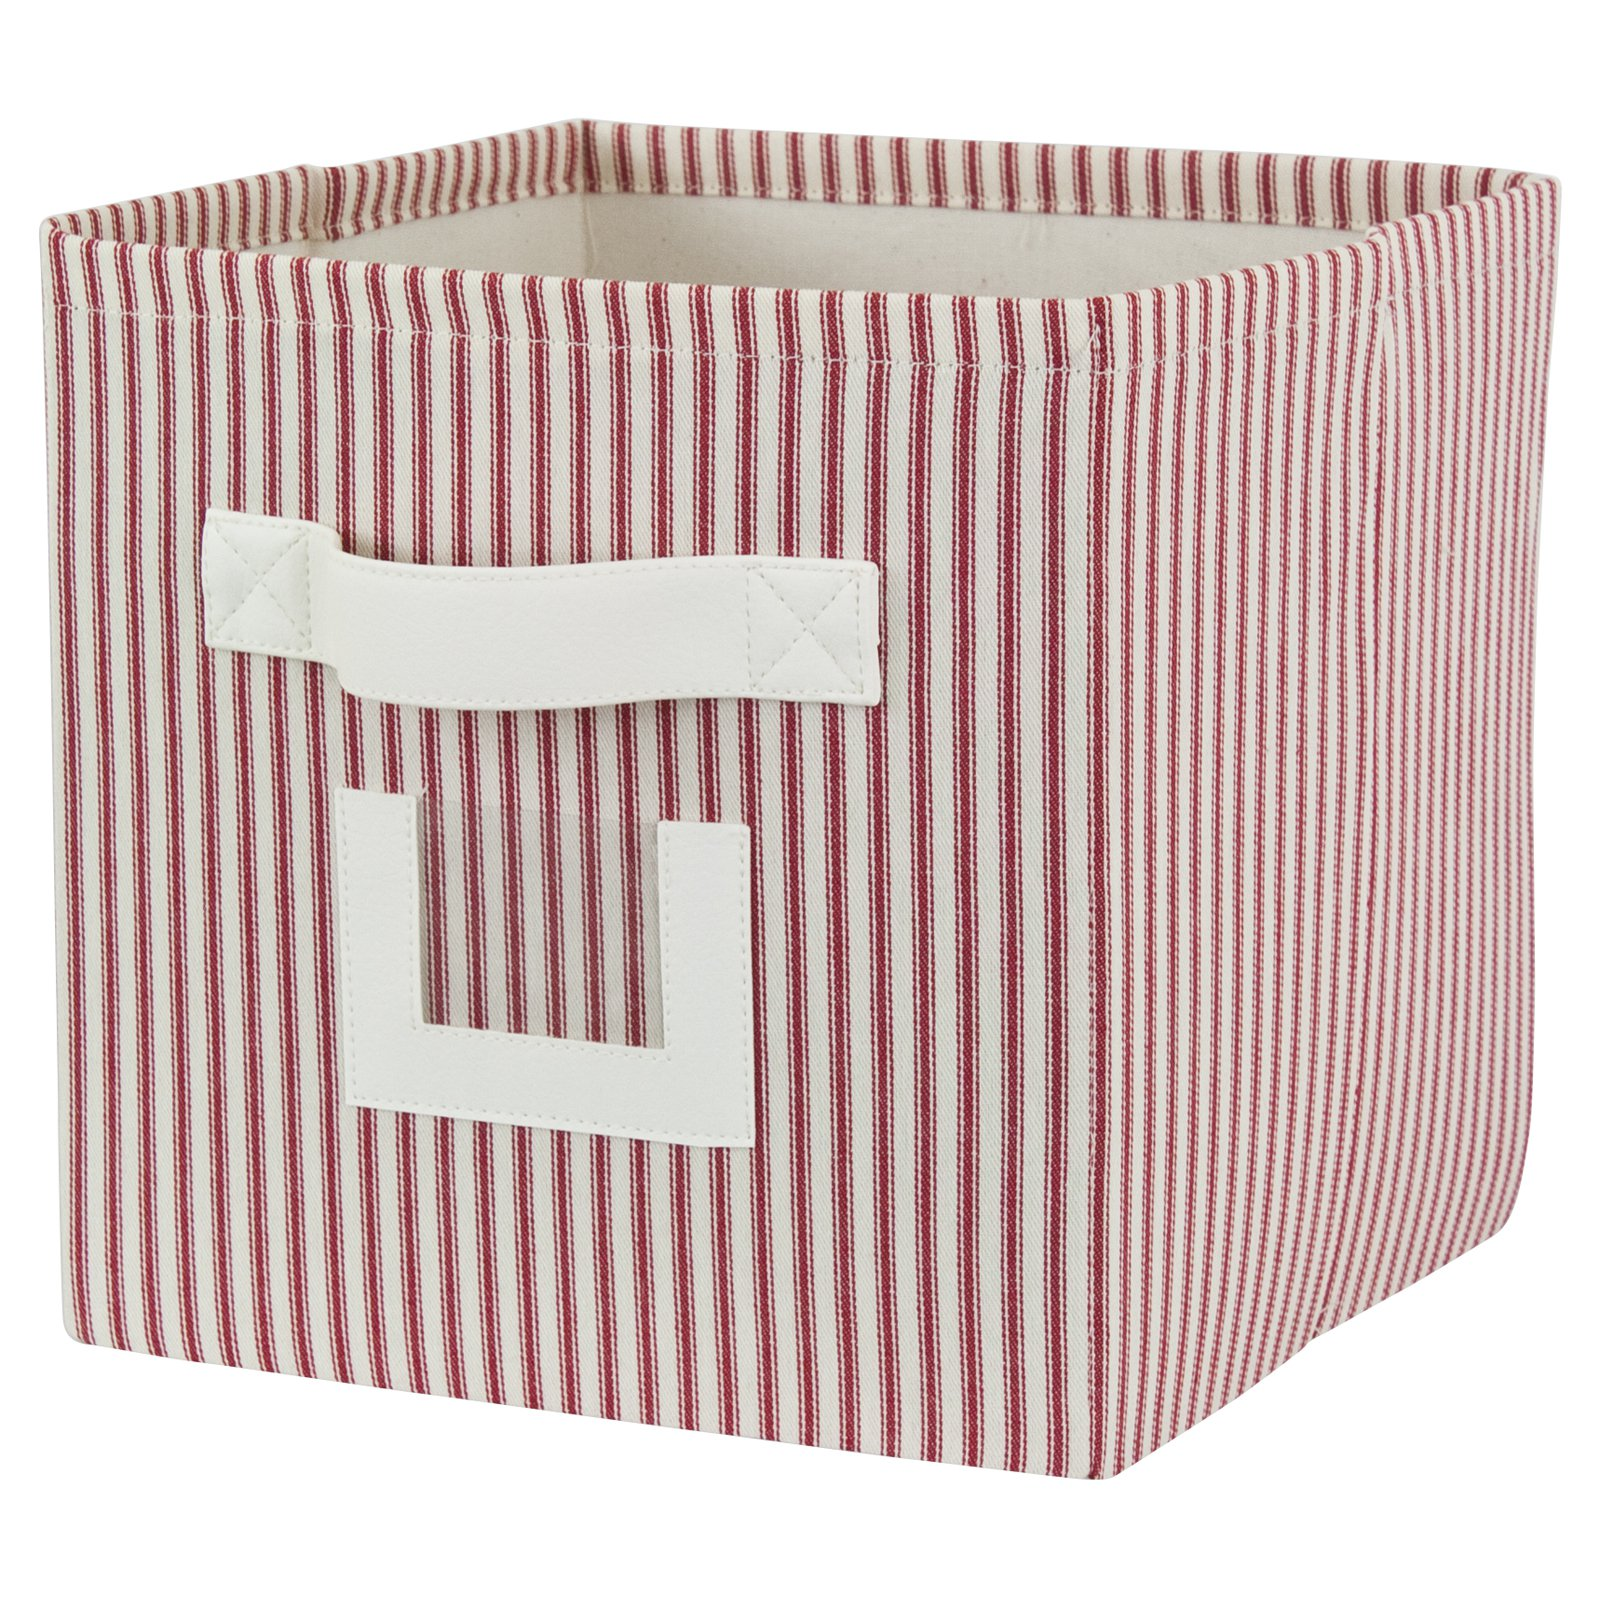 Brite Ideas Stripe Red Storage Bin with Handle